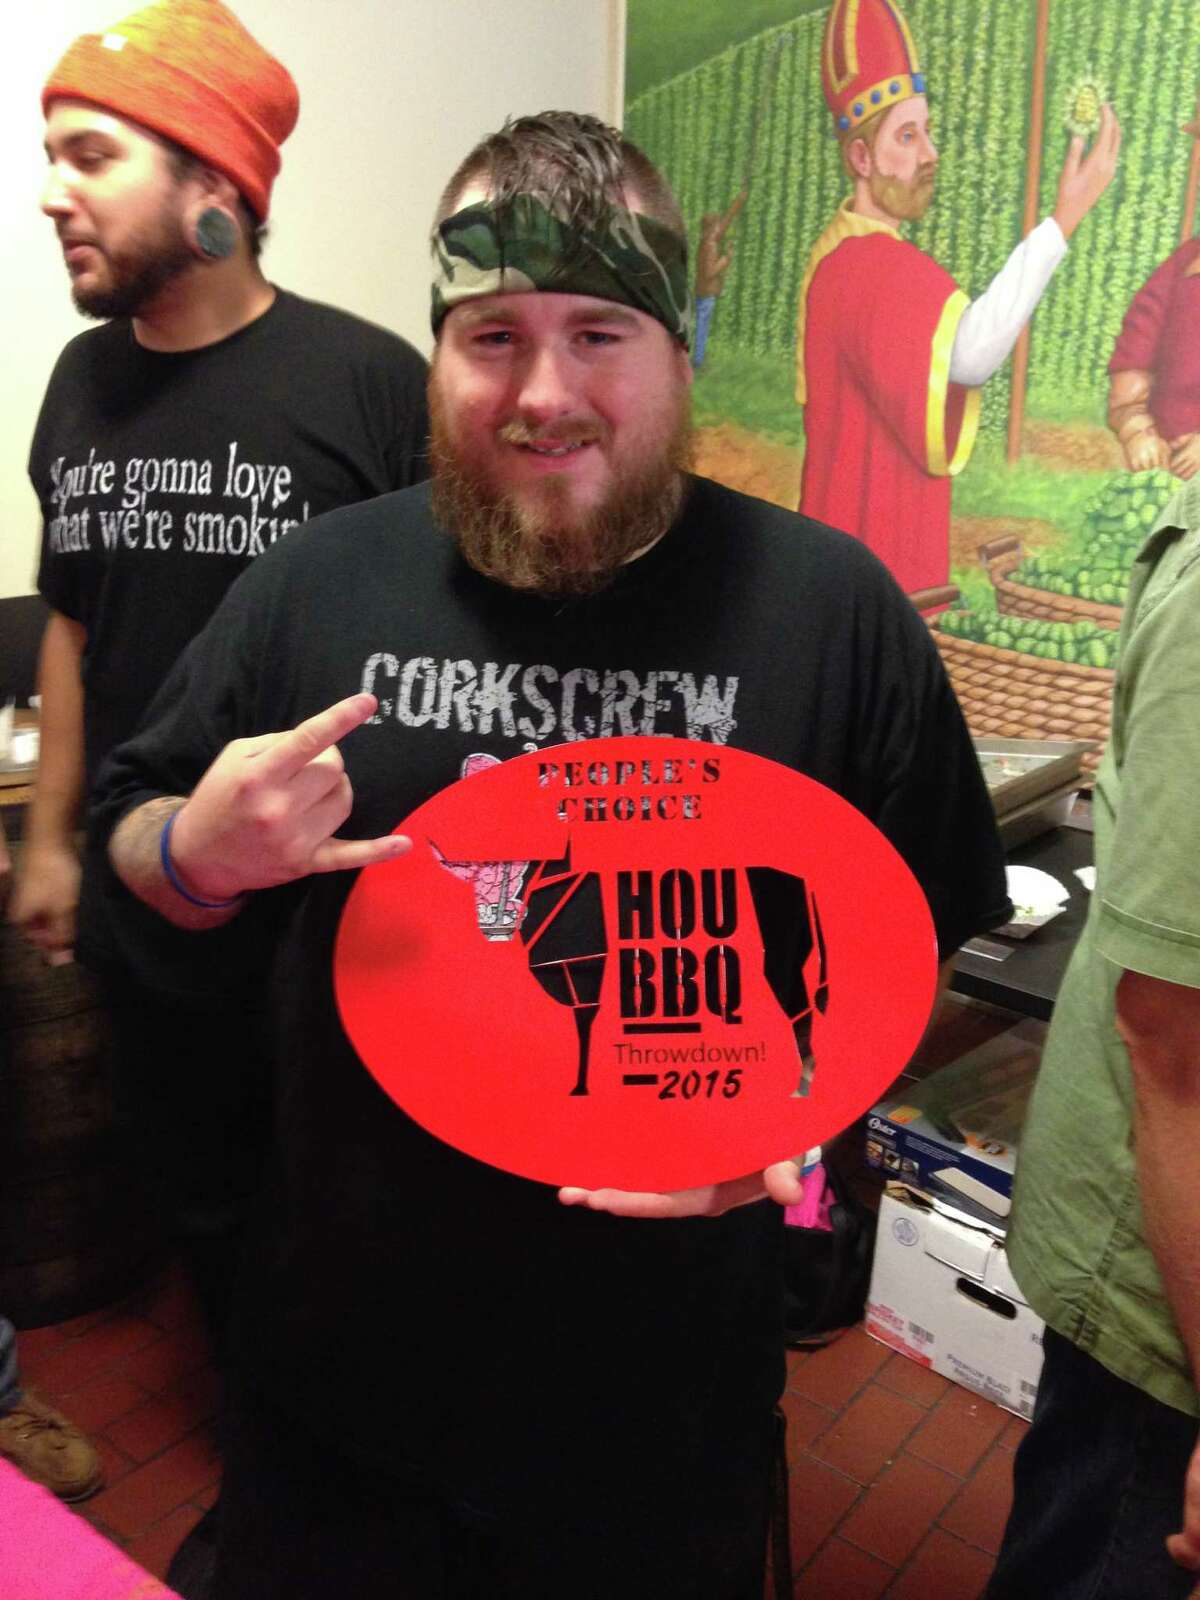 CorkScrew BBQ won the People's Choice Award (for its prime brisket and Texas caviar taco) at the first Houston BBQ Throwdown sponsored by the Houston Barbecue Festival and Saint Arnold Brewing Co. on Sunday, Nov. 8 at Saint Arnold.